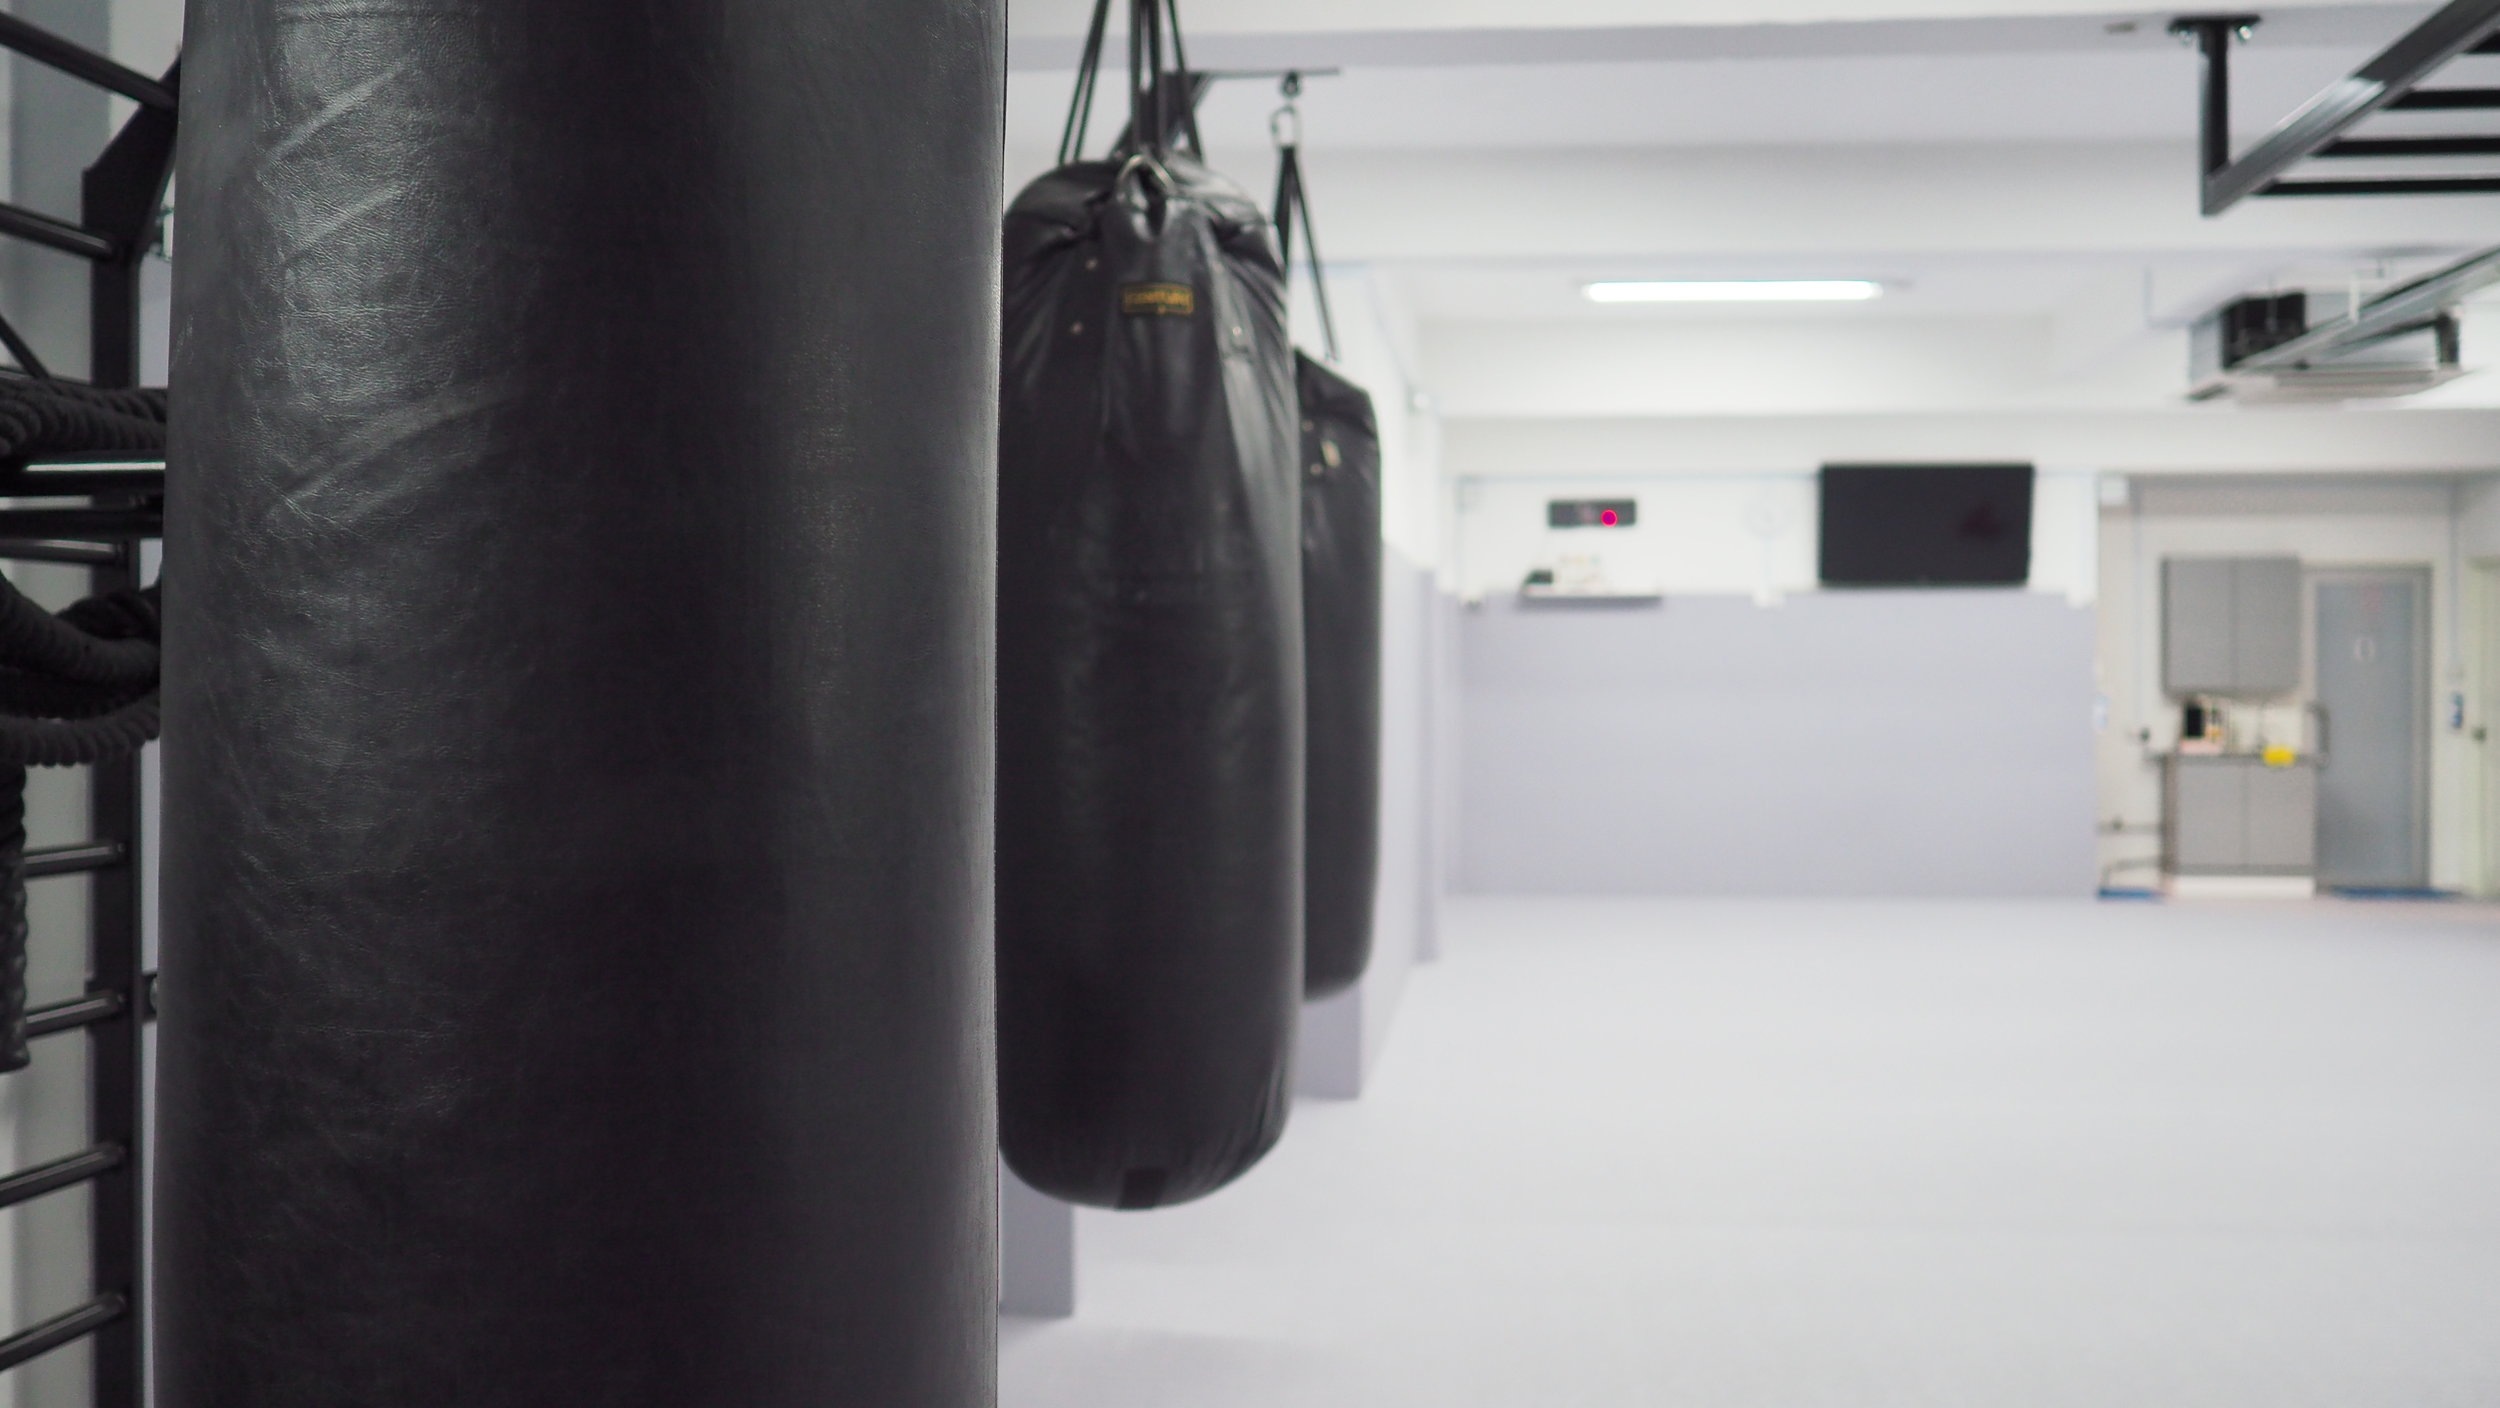 Our Gym - Spanning 2,000 square feet, our gym is fully matted and padded with Dollamur® sport surfaces to keep you safe, allowing you to train with confidence.